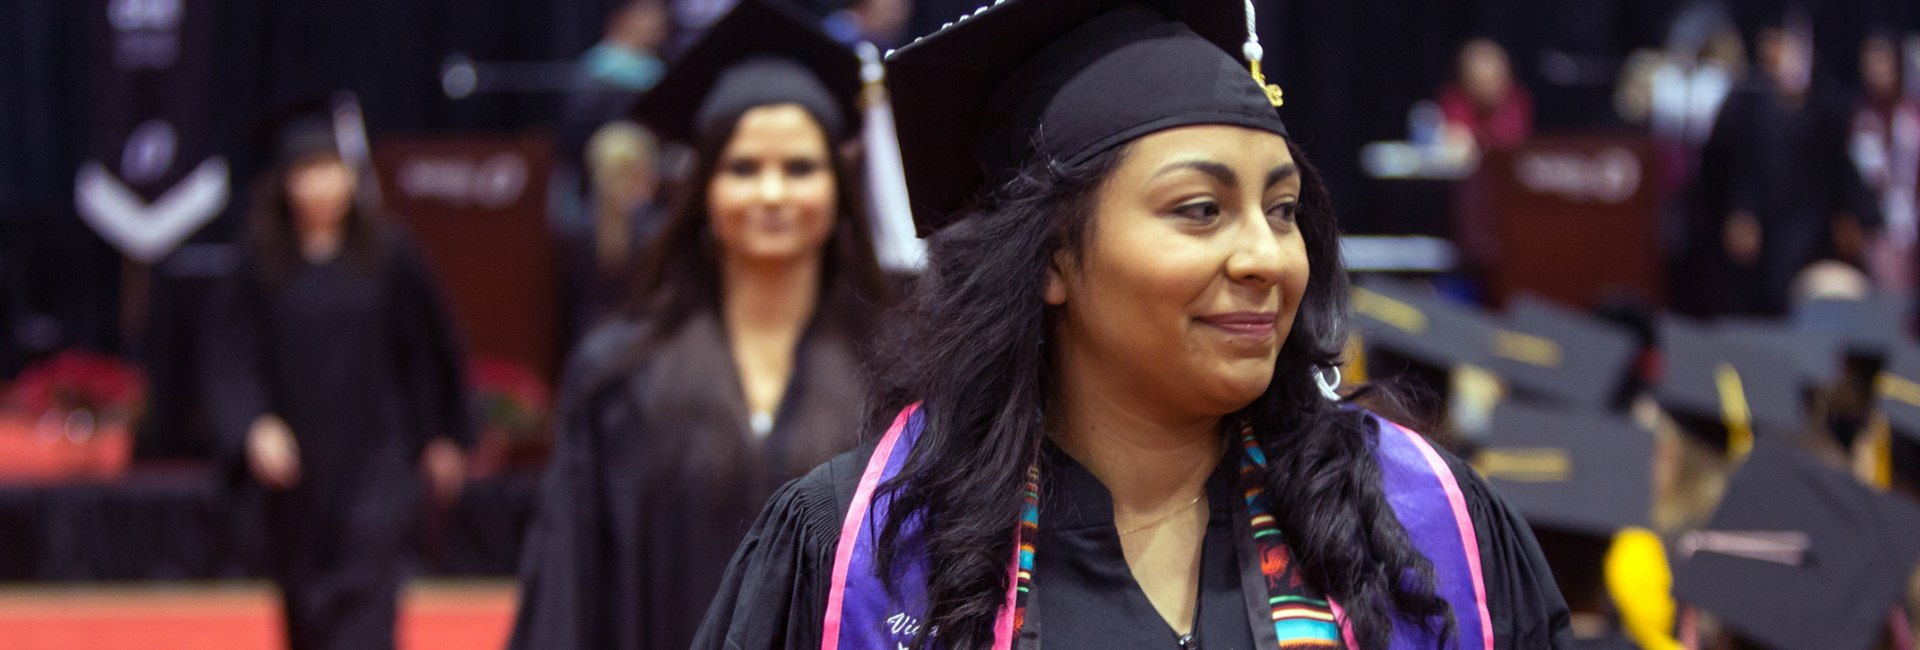 Commencement Ceremonies Dec. 20